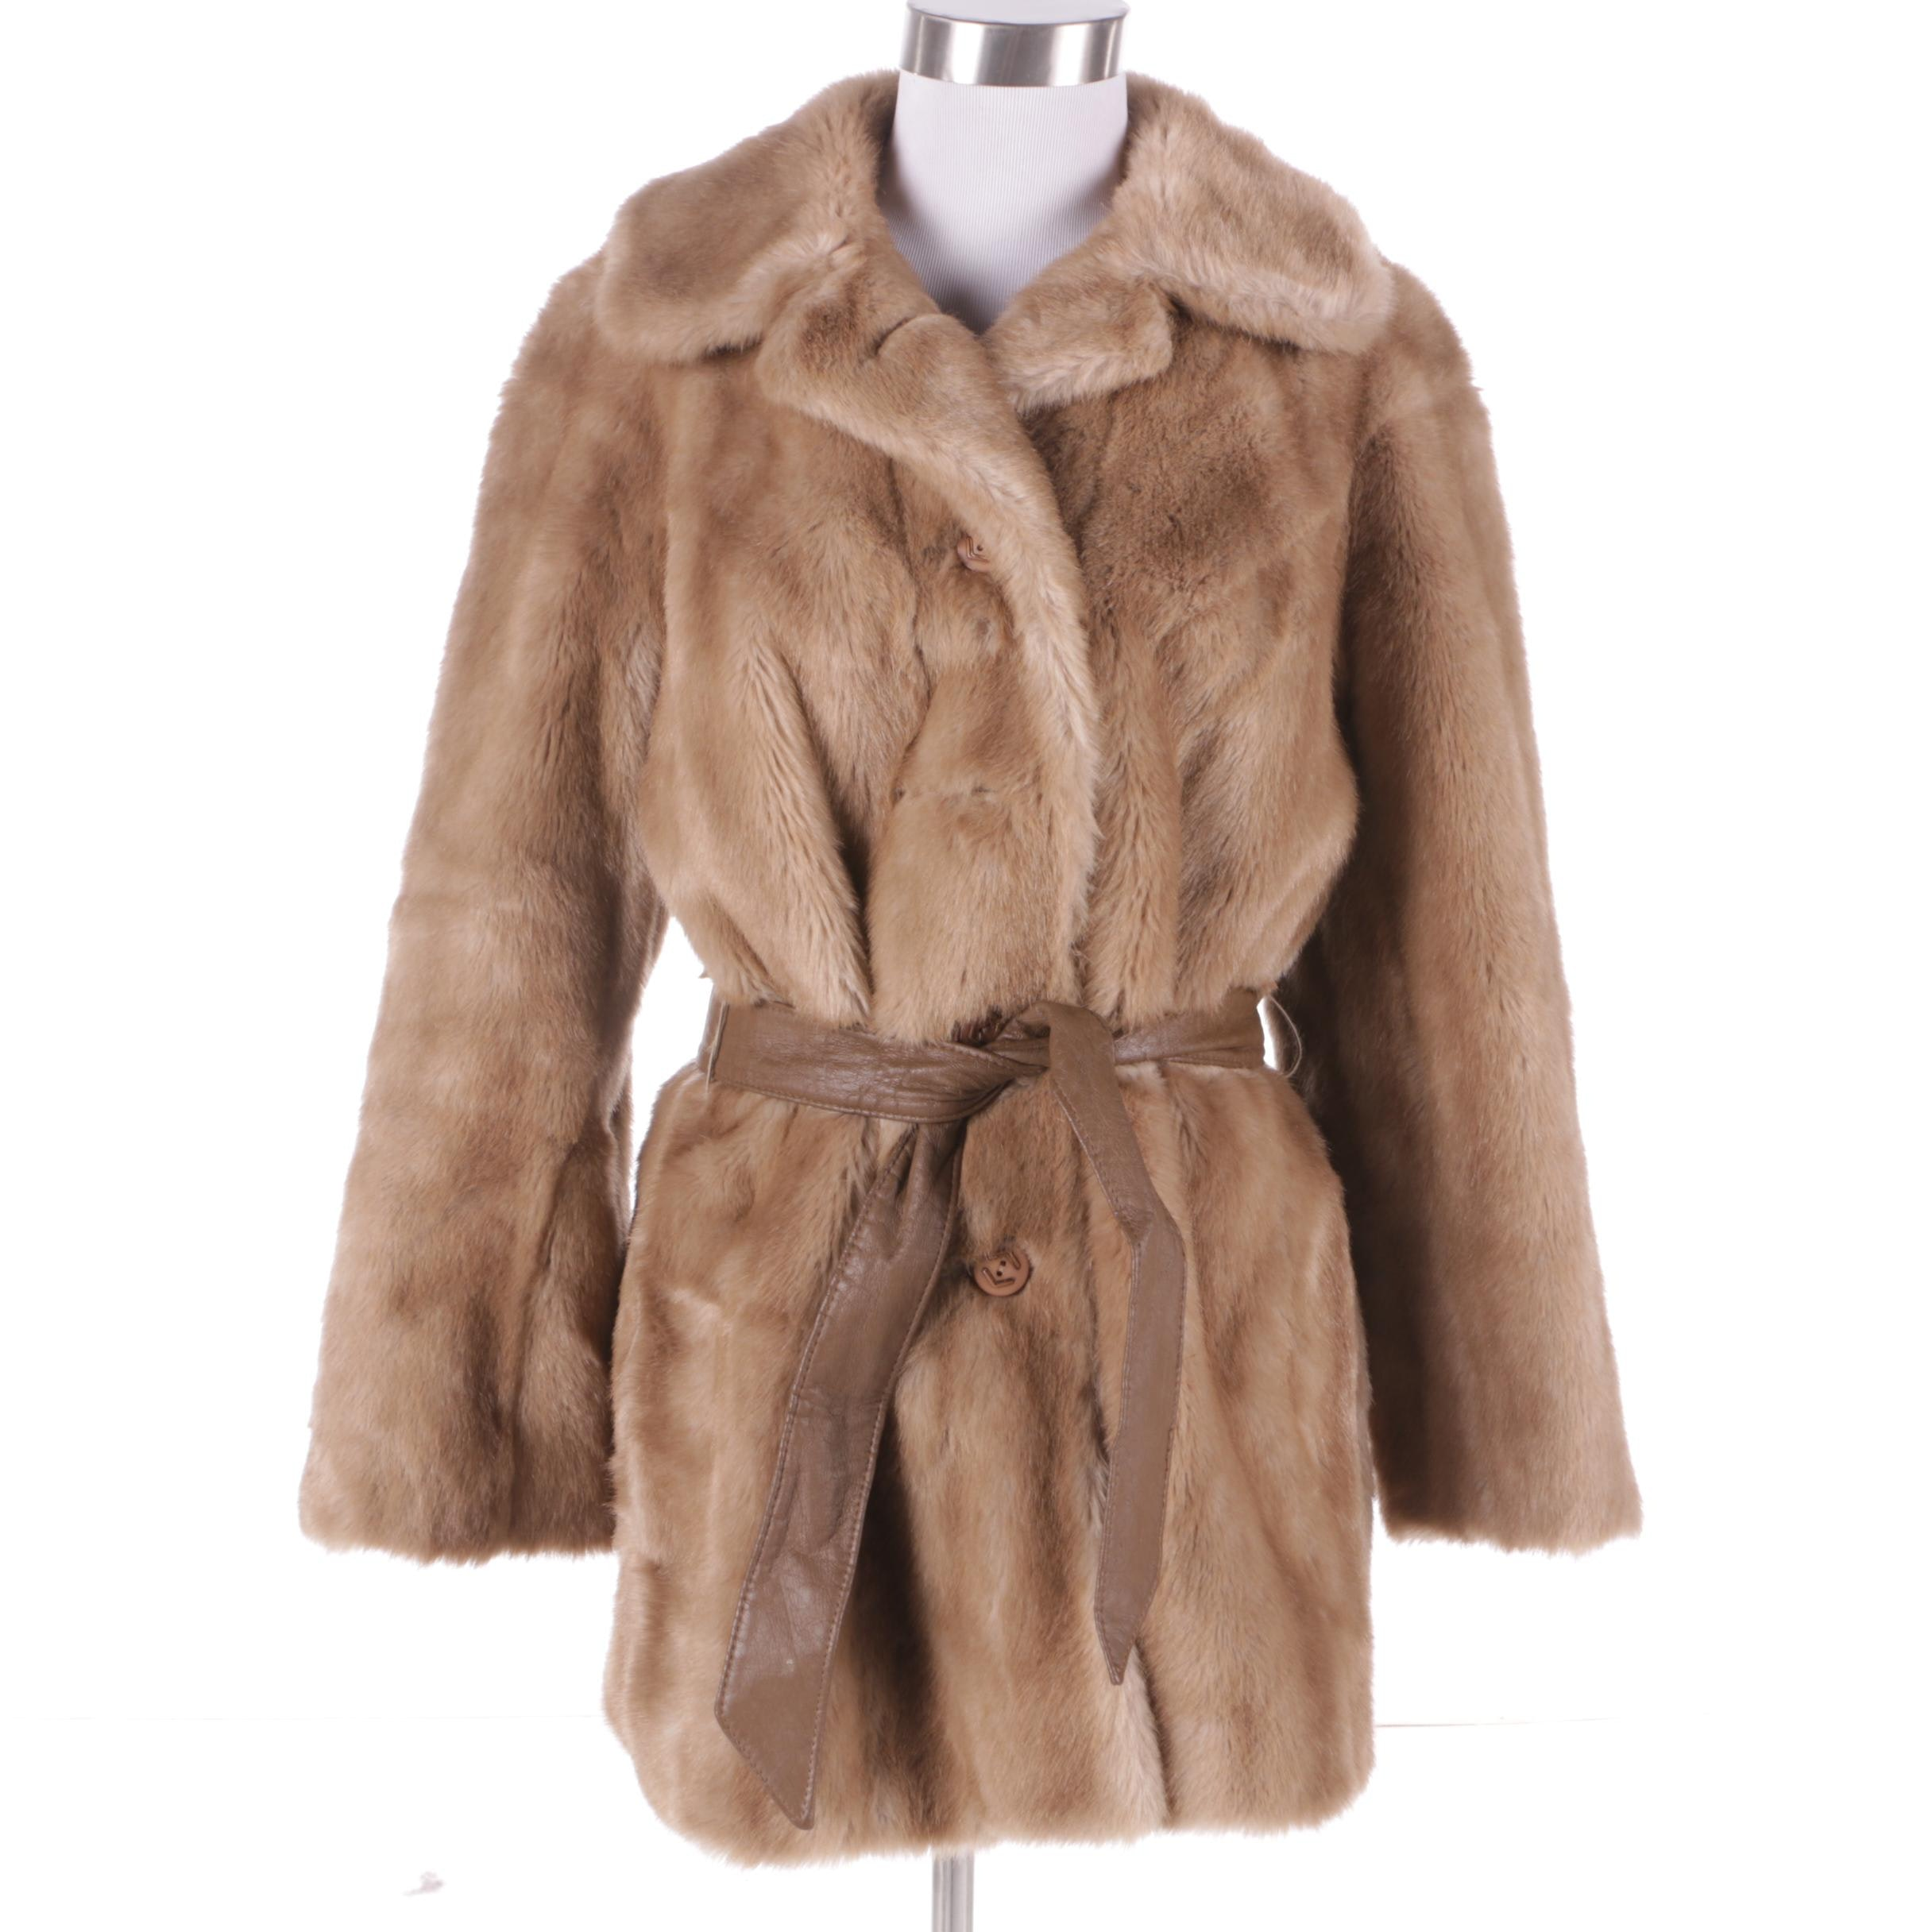 Women's Vintage Tissavel of France Tan Faux Fur Coat